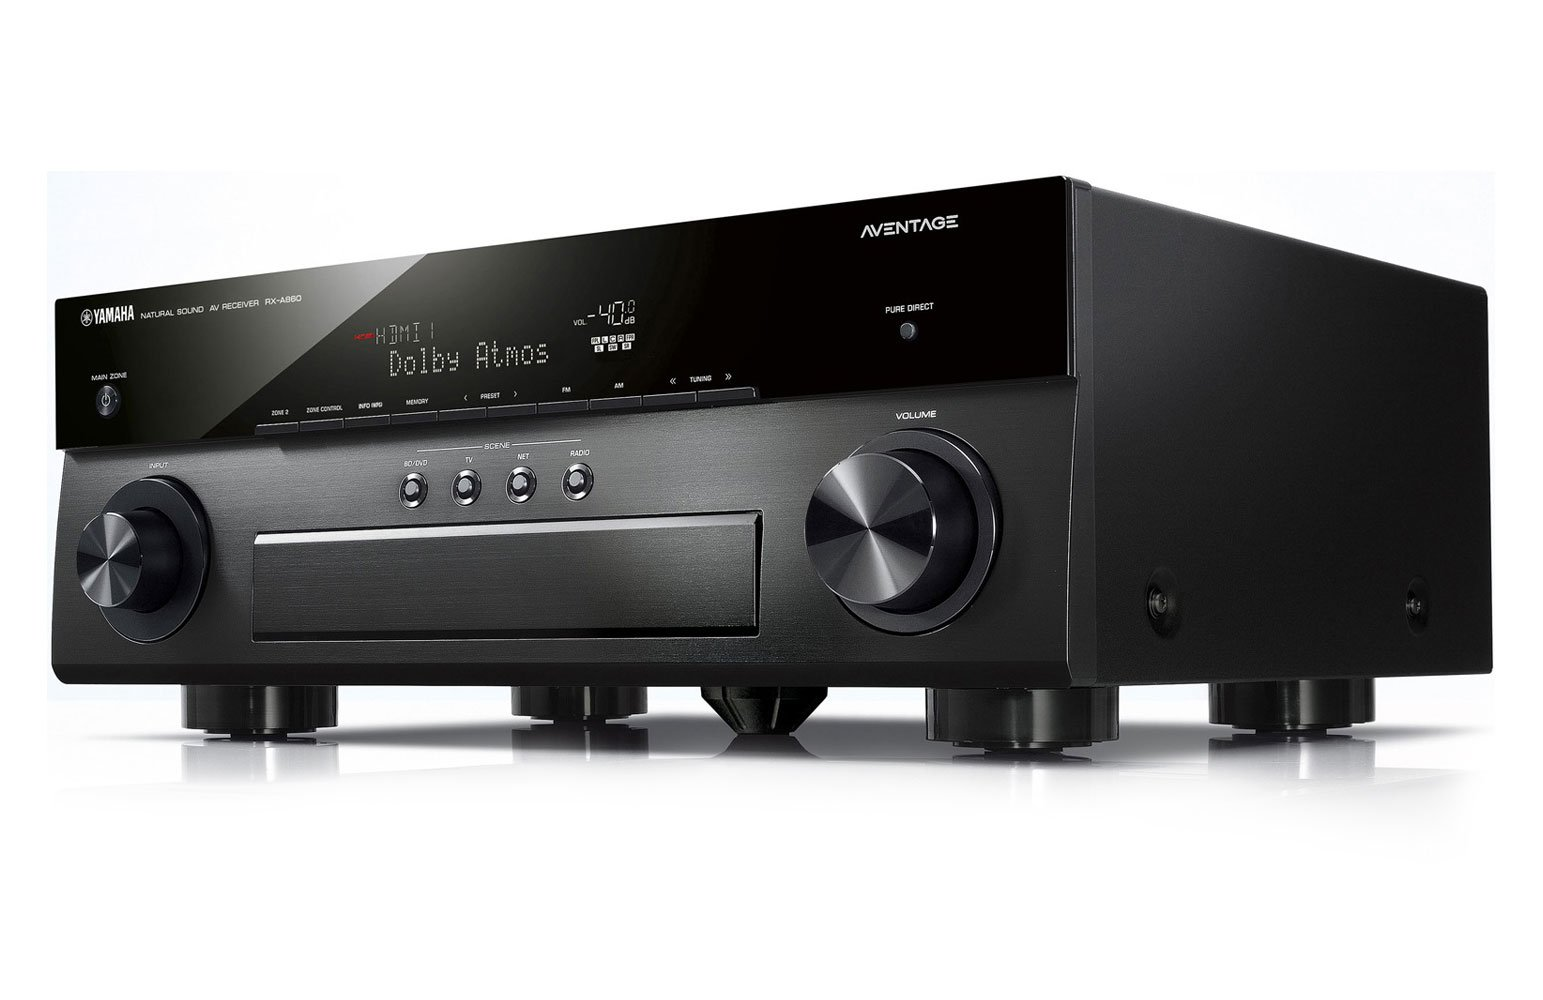 yamaha rx a860 aventage dolby atmos av receiver review. Black Bedroom Furniture Sets. Home Design Ideas